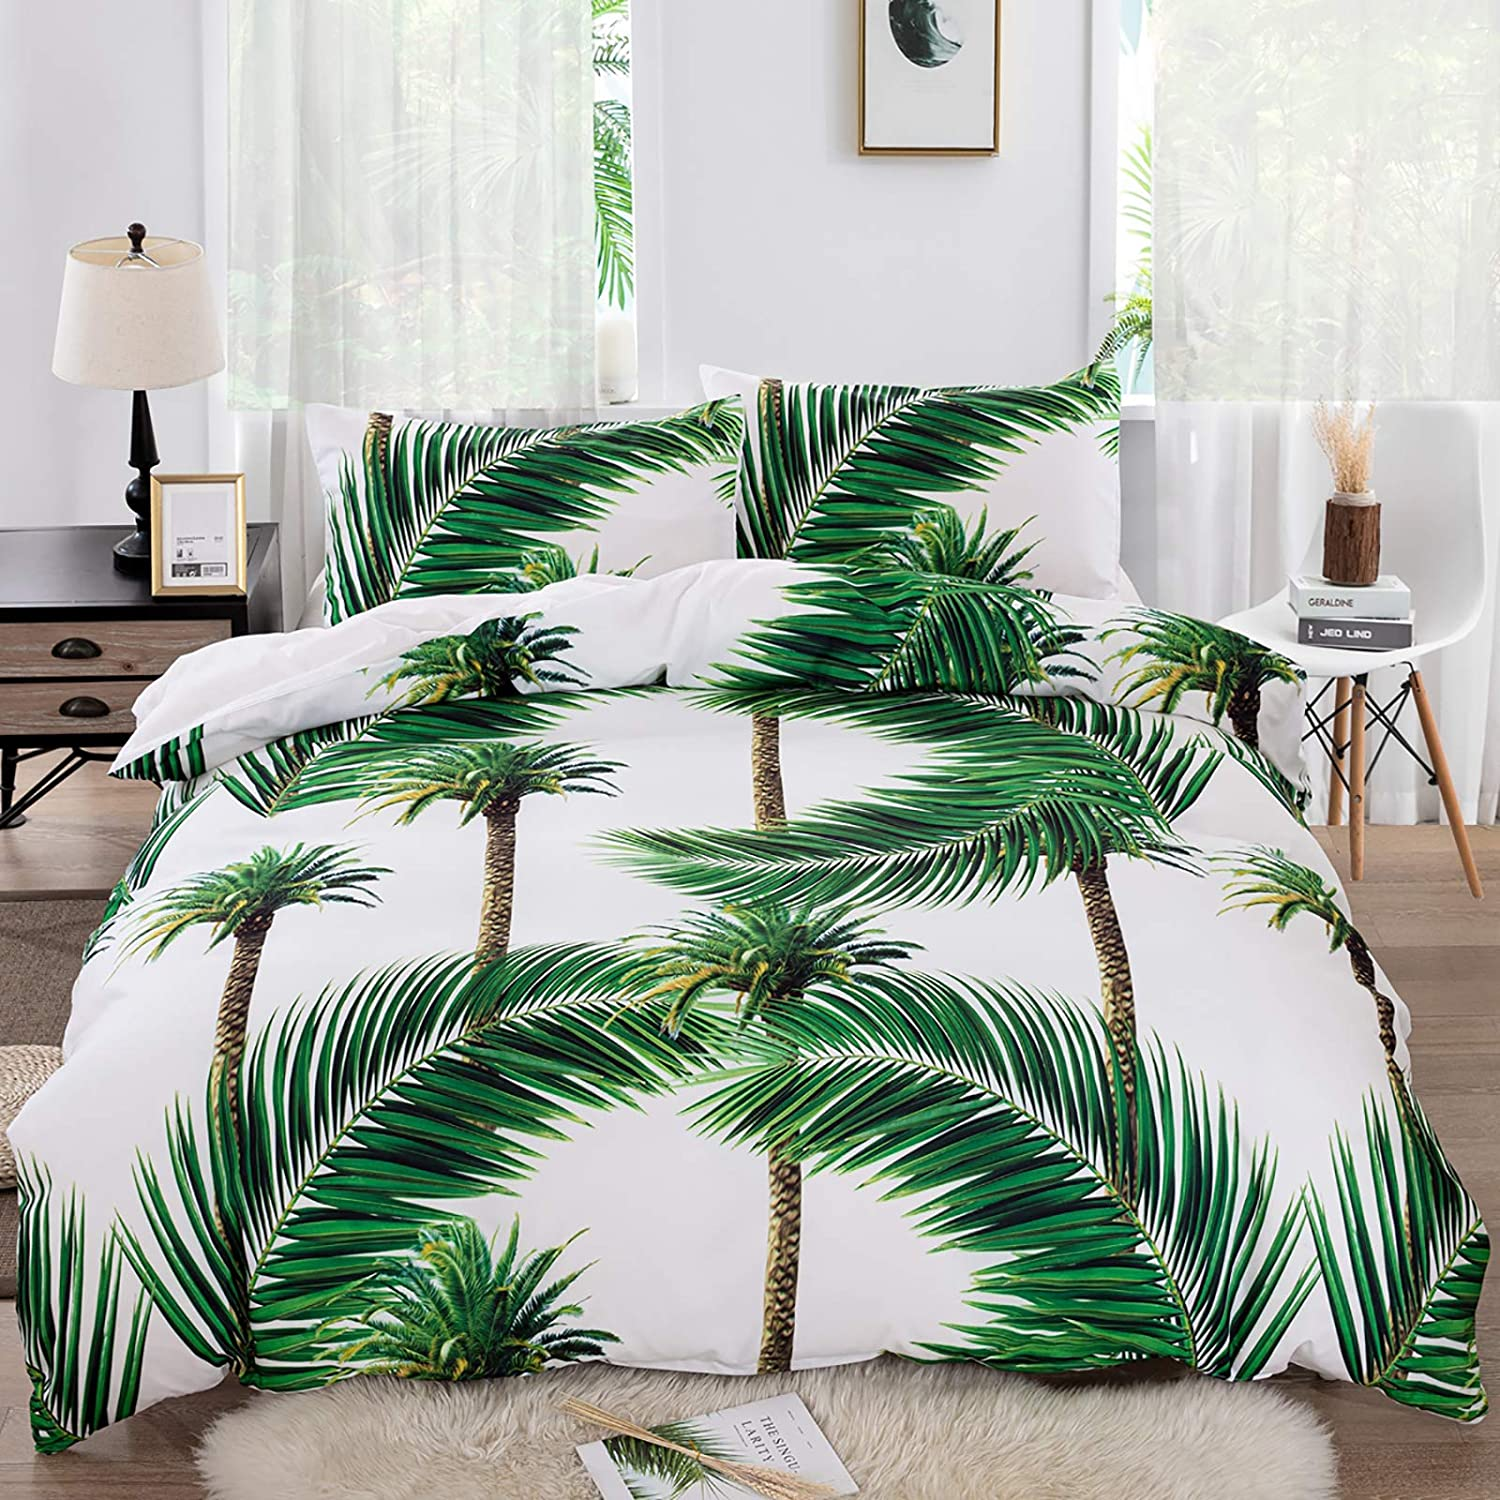 Tropical Duvet Cover In a popularity Set King Size Green Surprise price Bedding 1 Leaves D